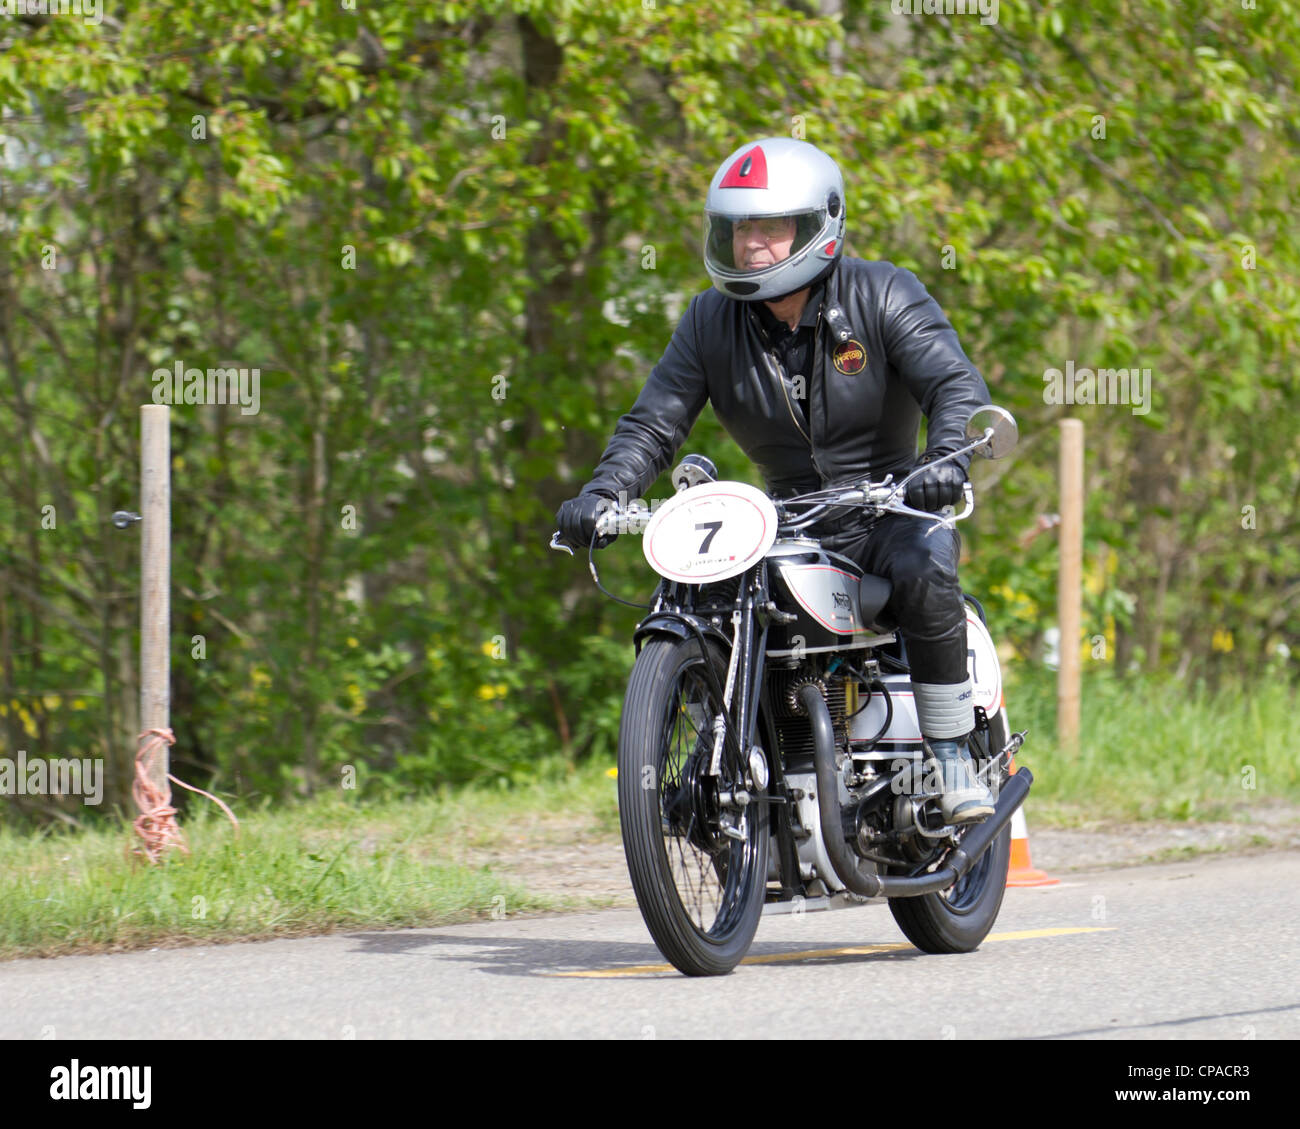 Vintage motorbike Norton Mod. 20 from 1932 on display at Grand Prix in Mutschellen, SUI on April 29, 2012 - Stock Image